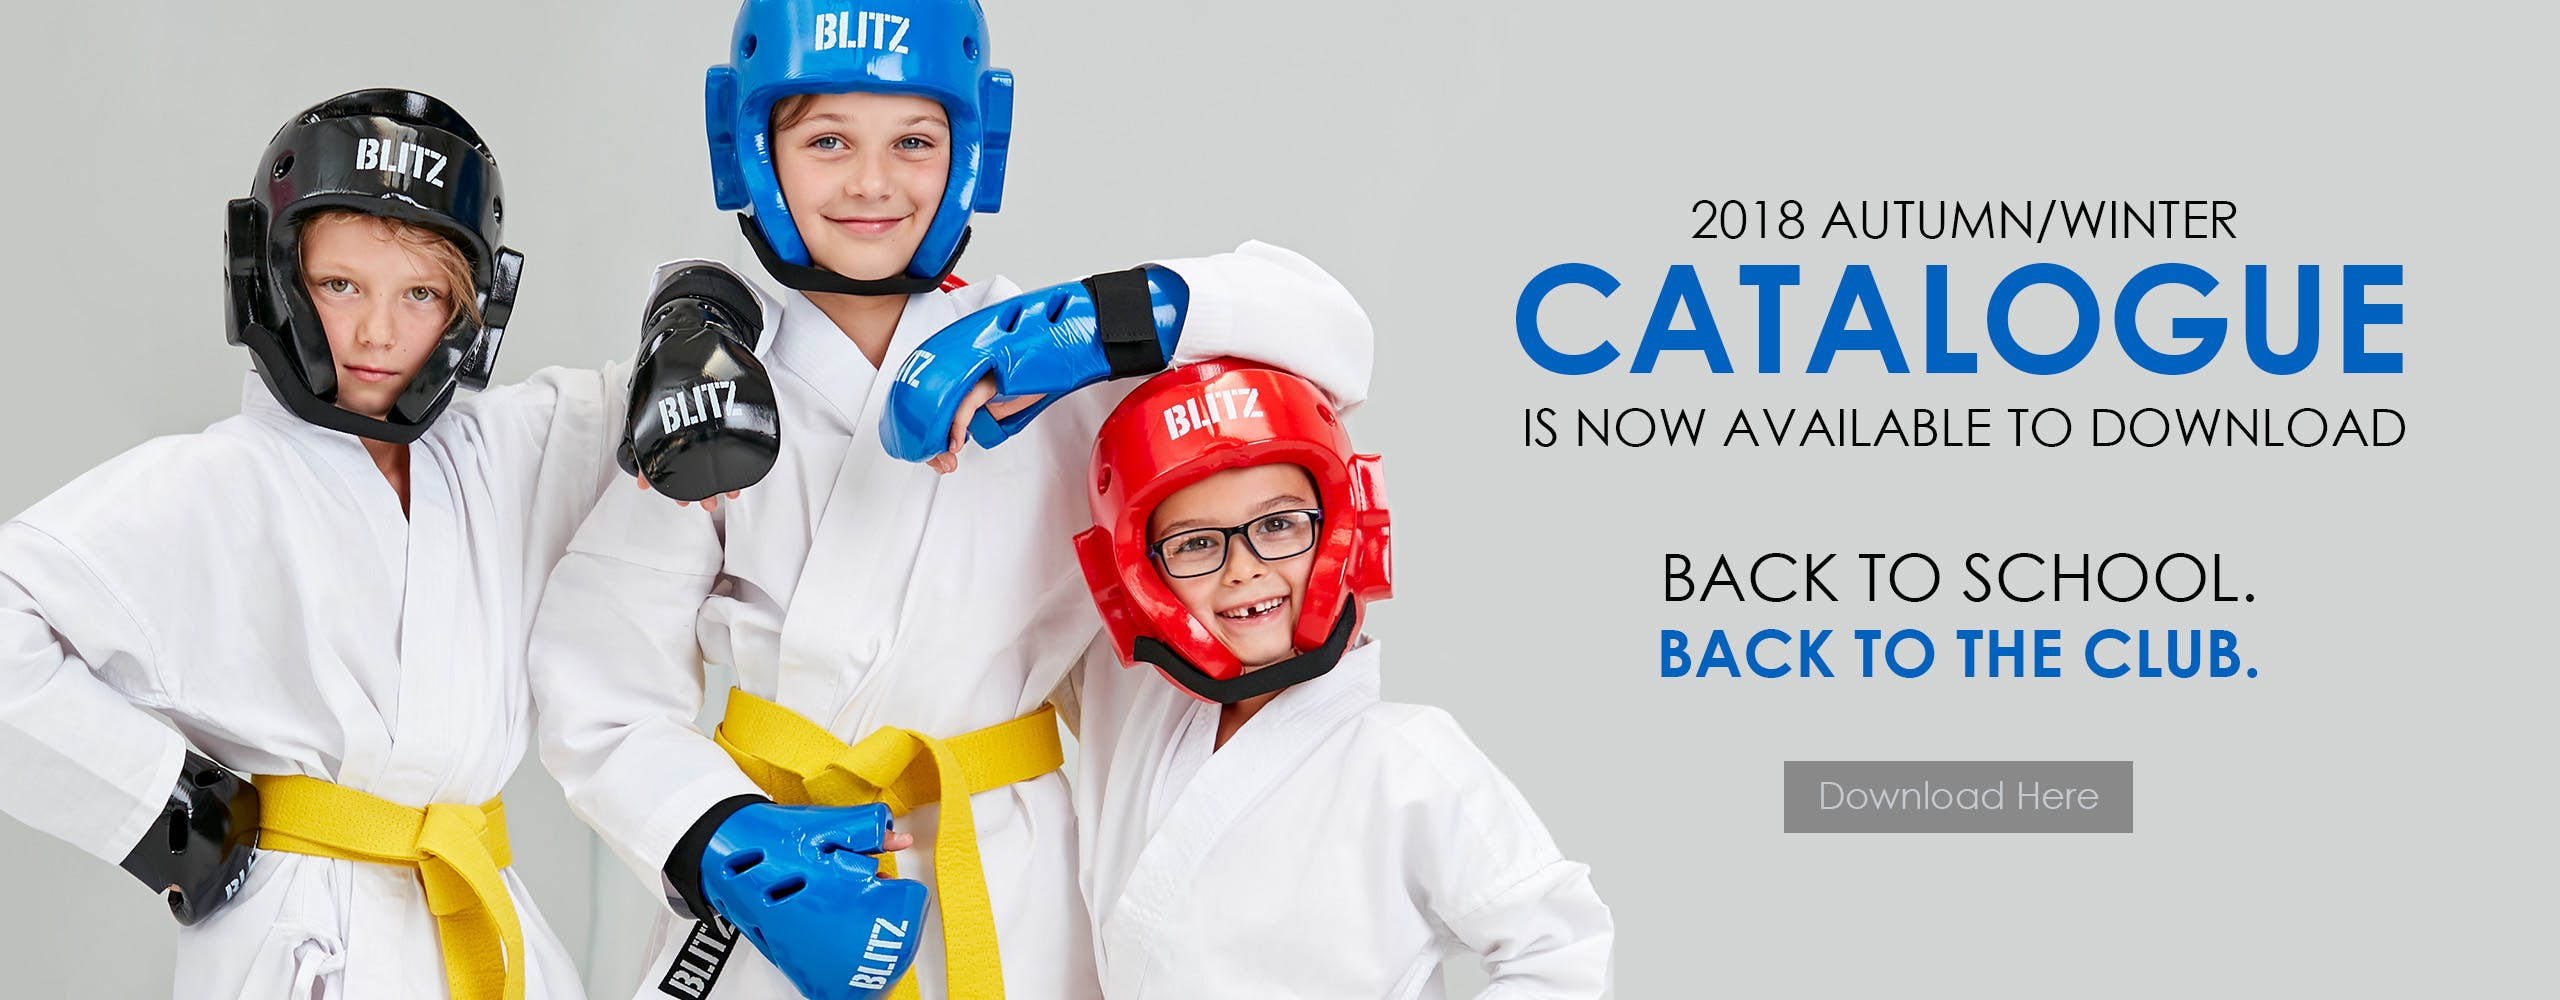 2018 Blitz Autumn/Winter Catalogue is now available to download